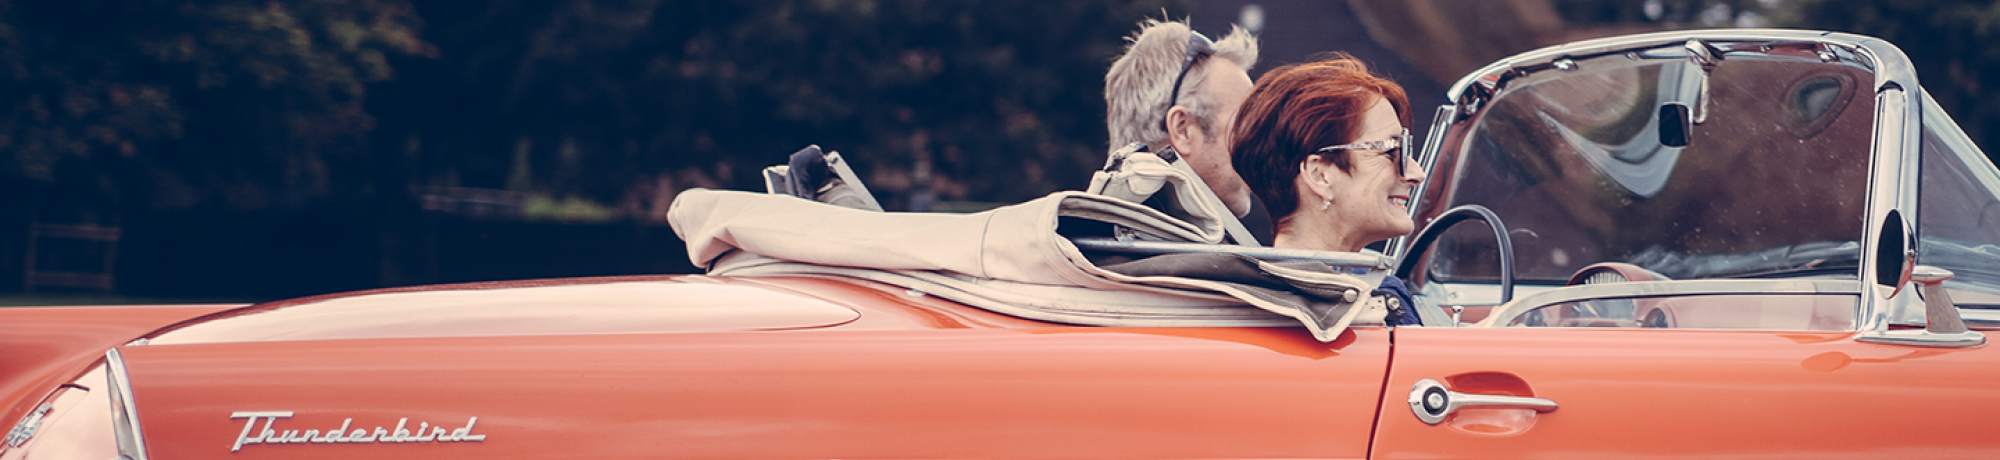 an older couple in a red convertible